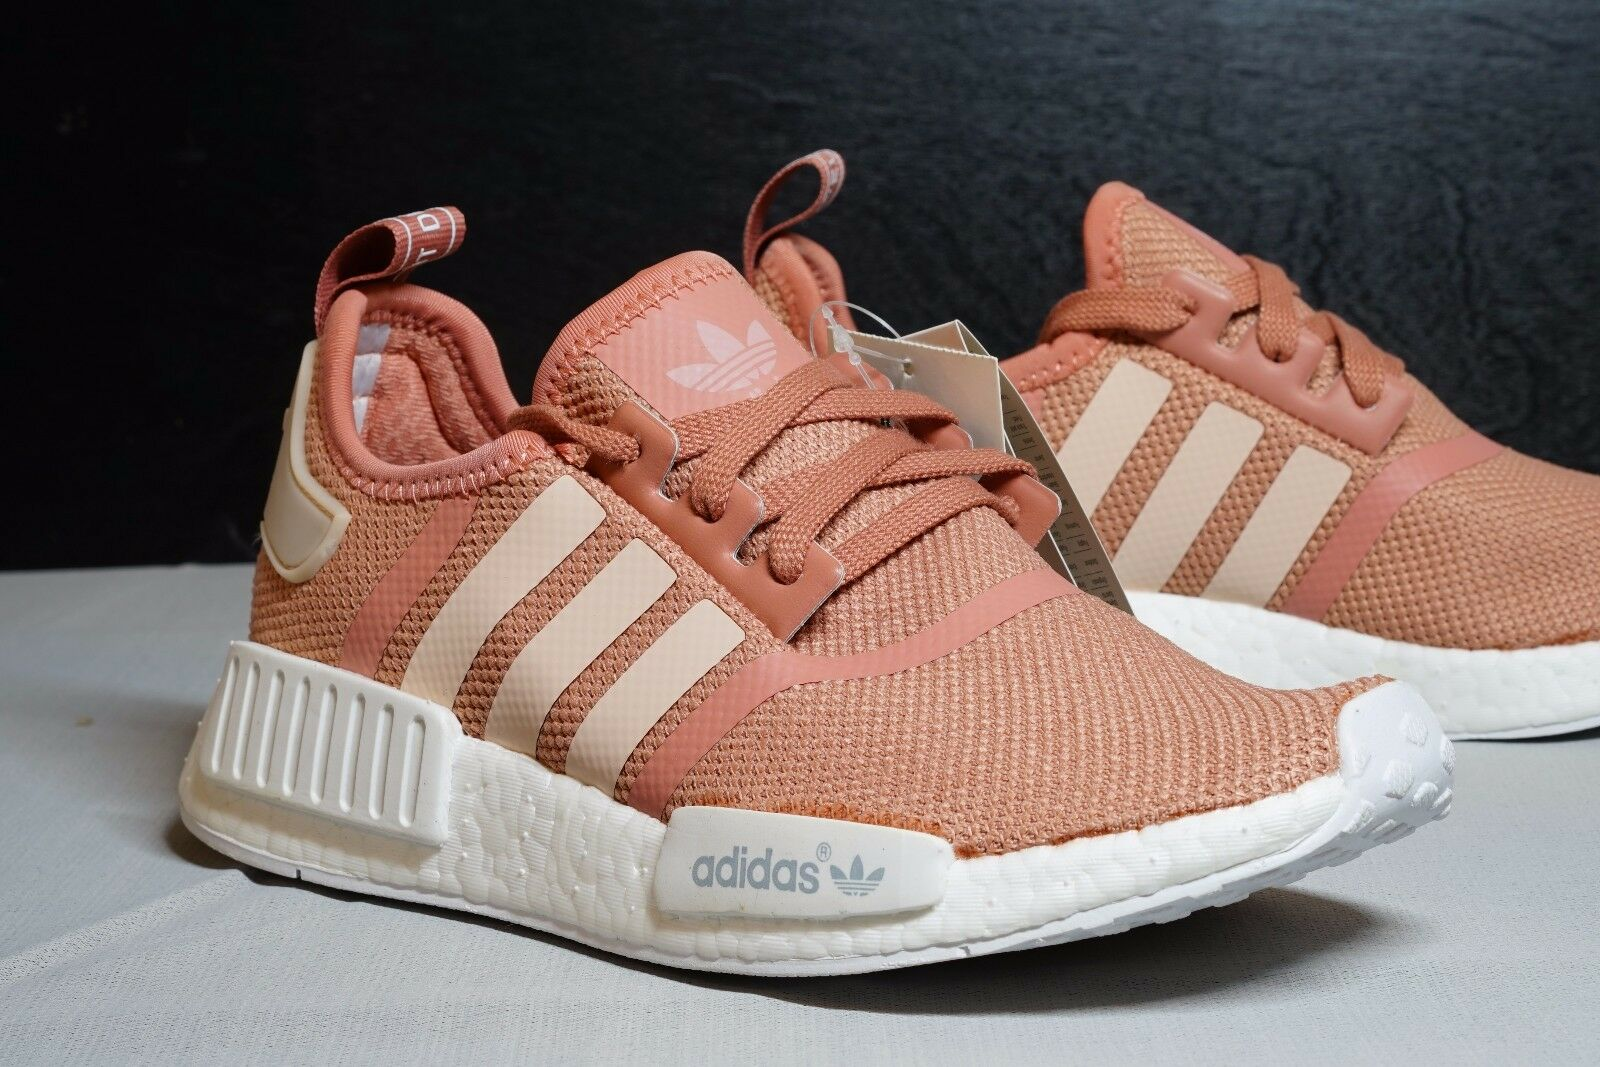 ADIDAS NMD R1 Raw Pink pink Salmon Peach women shoes  [ USA SELLER ]